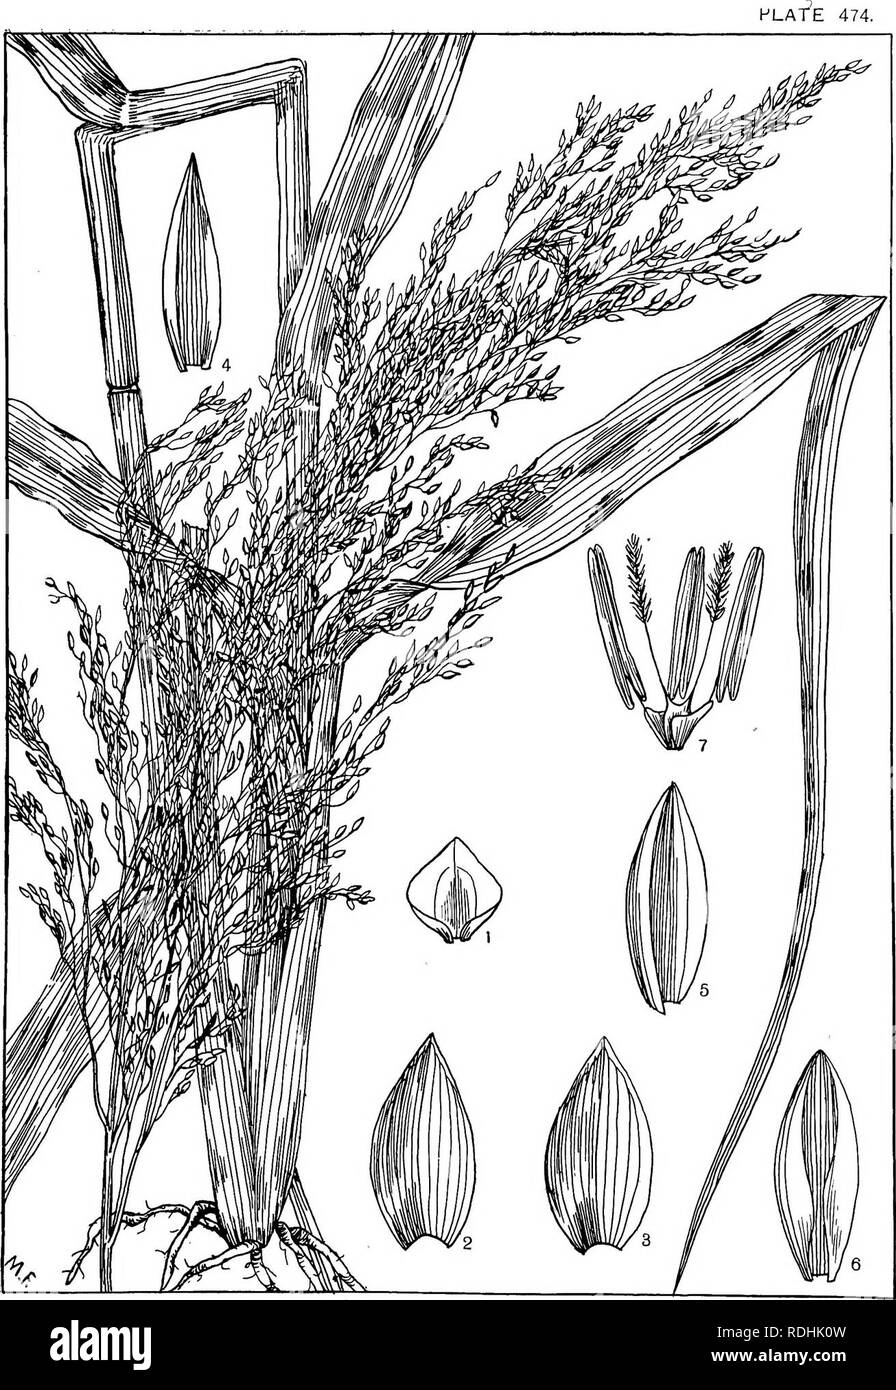 . Natal plants : Descriptions and figures of Natal indigenous plants, with notes on their distribution, economic value, native names, &c., / by J. Medley Wood and Maurice S. Evans. Published under the auspices of Natal Government and Durban Botanic Society. Botany. PANICUM MILIARE, lam. Please note that these images are extracted from scanned page images that may have been digitally enhanced for readability - coloration and appearance of these illustrations may not perfectly resemble the original work.. Wood, John Medley, 1827-1914; Evans, Maurice S. (Maurice Smethurst), 1854-1920; Durban  - Stock Image